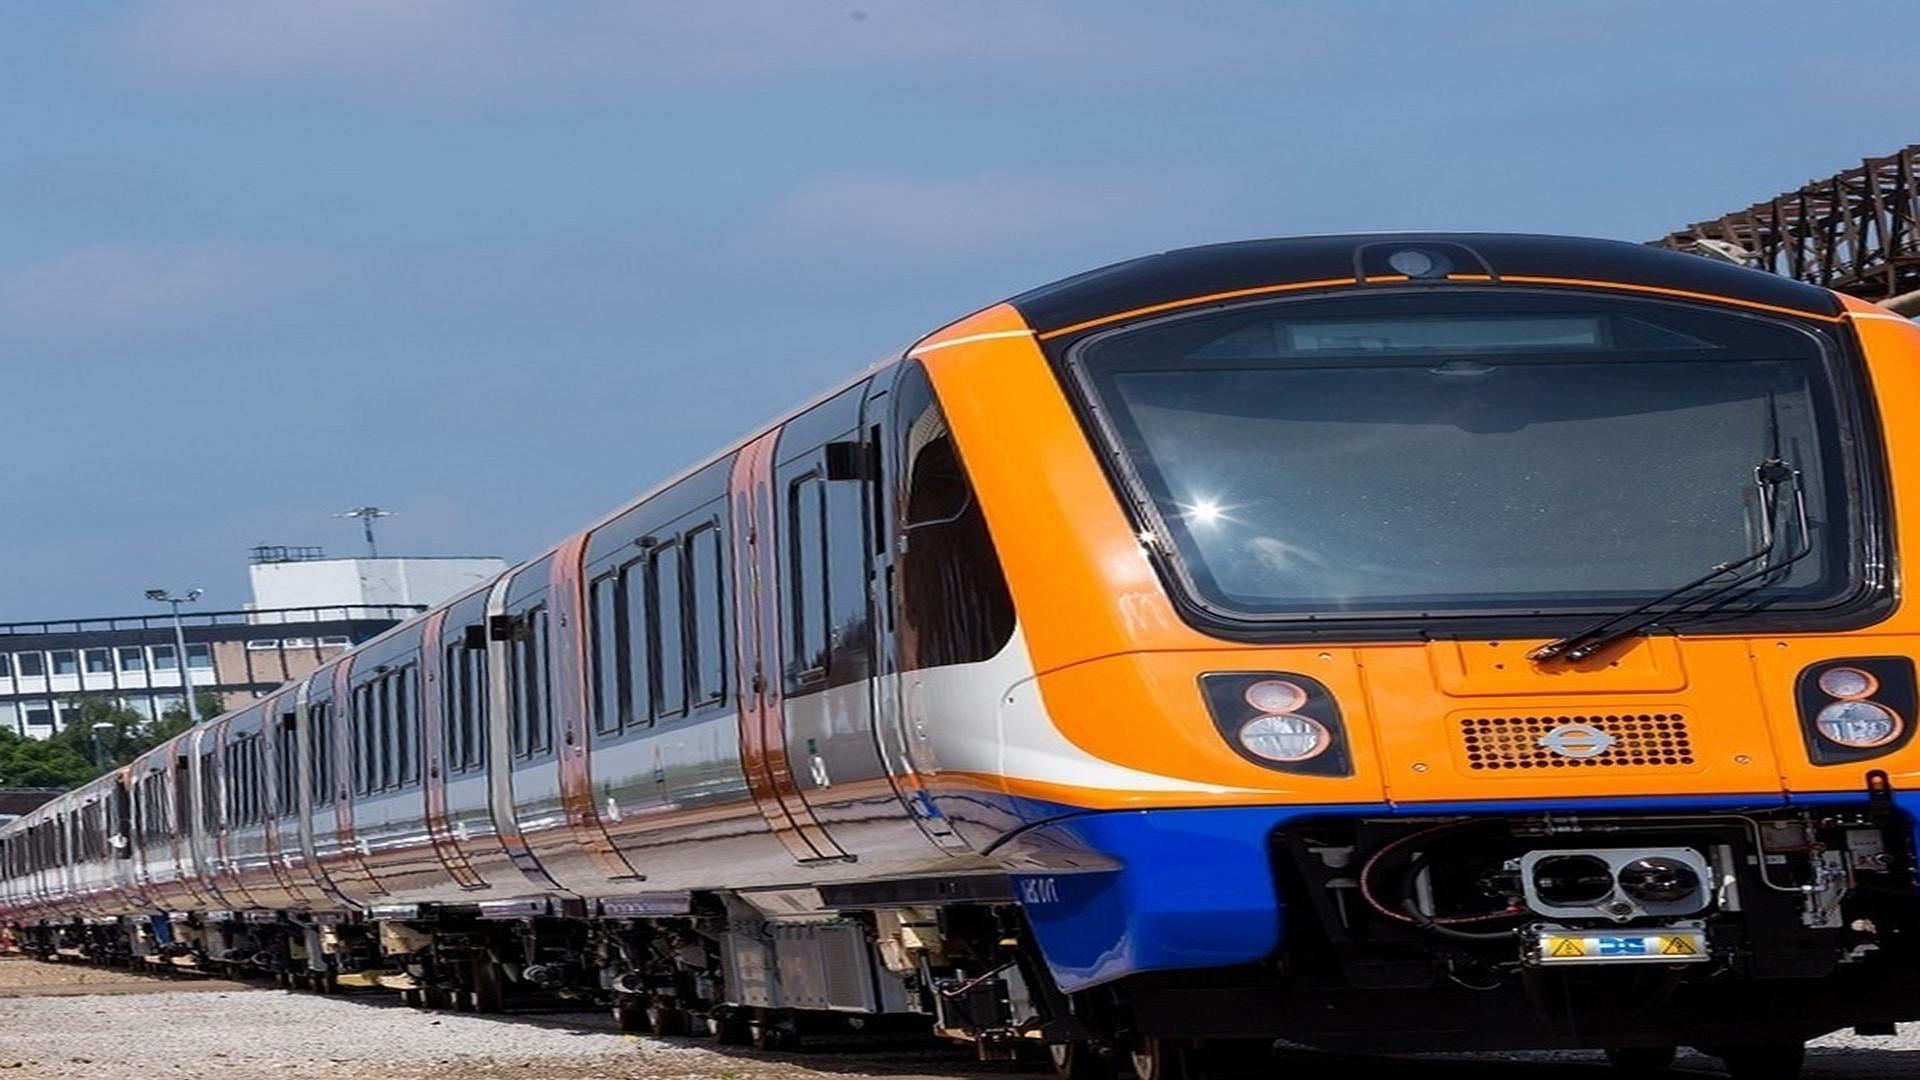 The London Overground Information